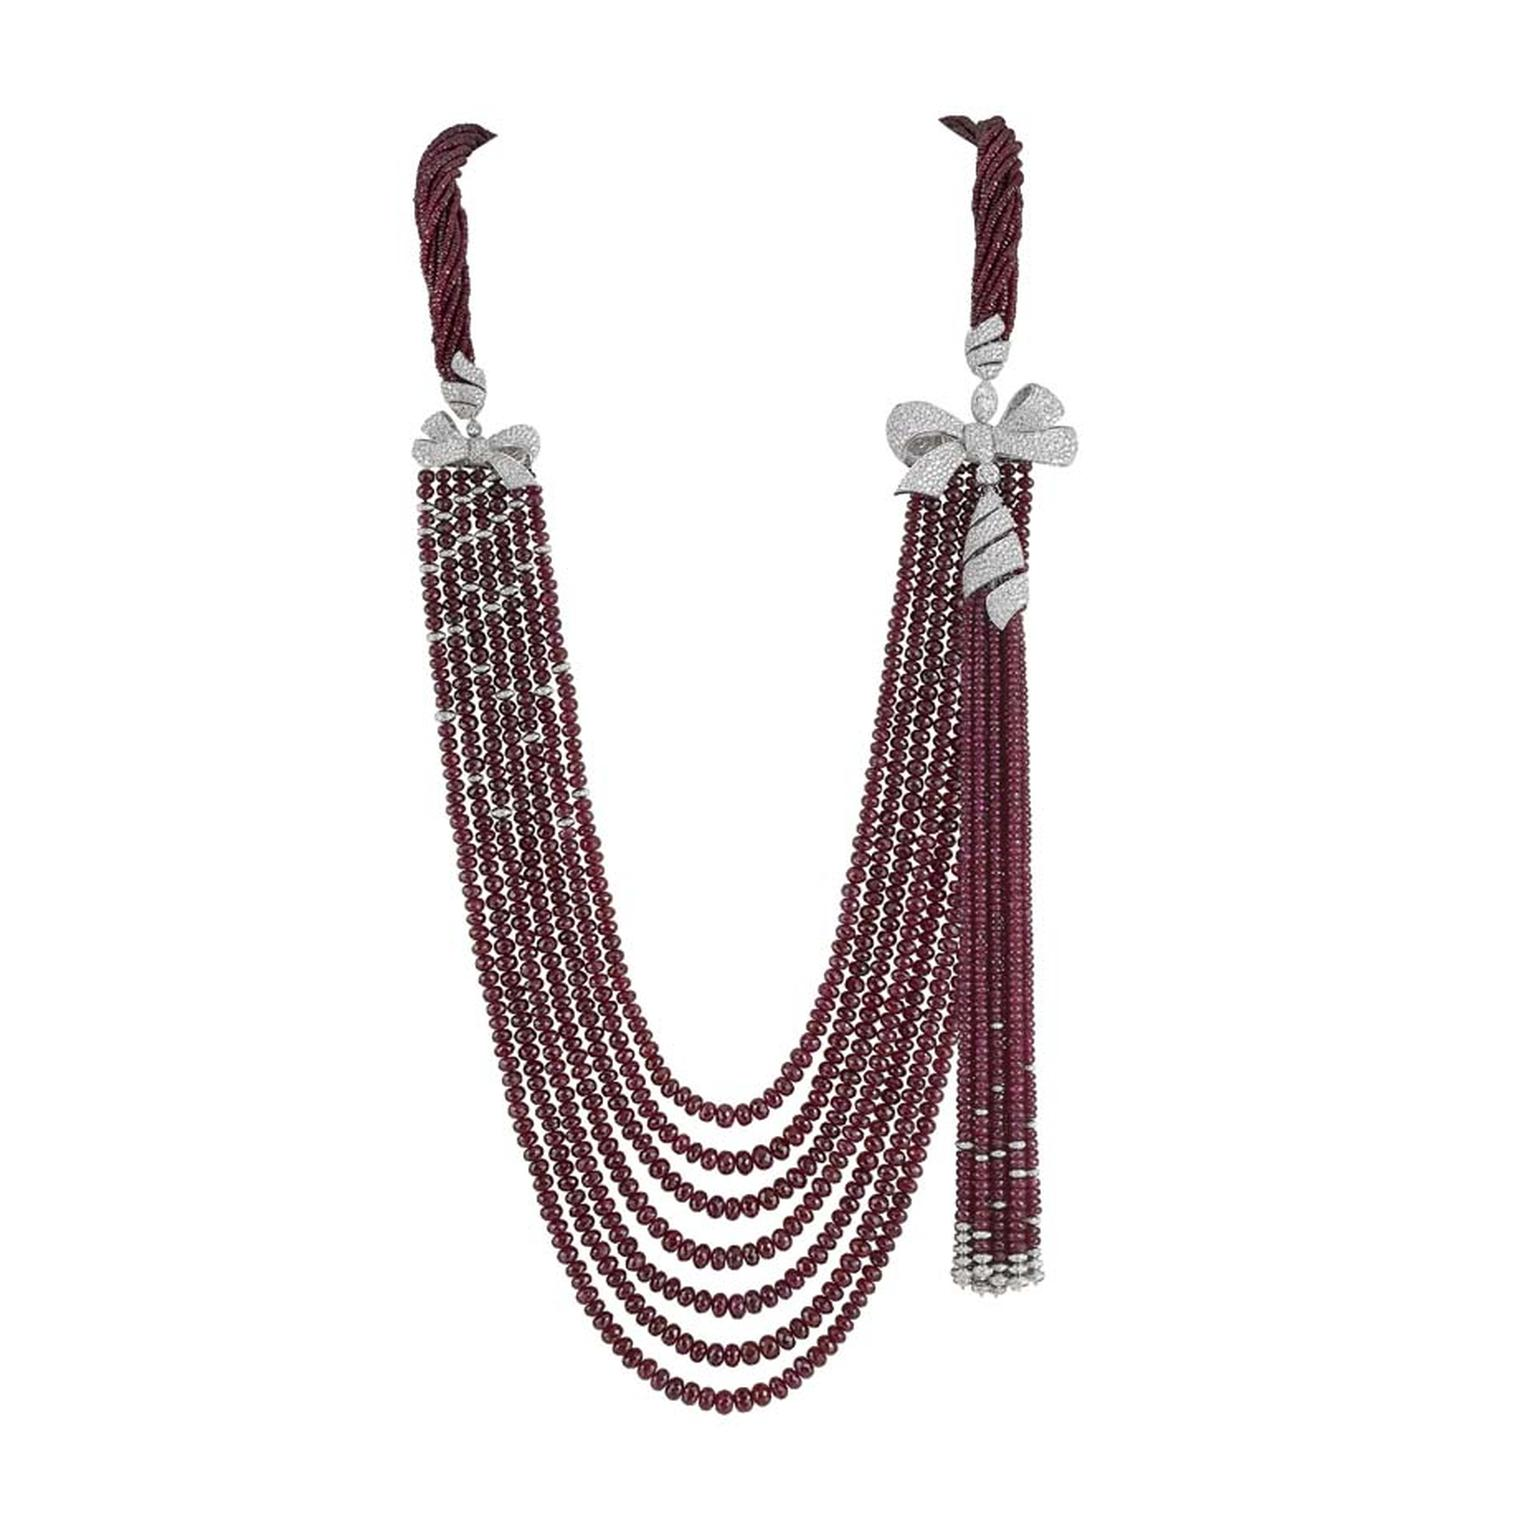 Garrard necklace from the new Bow collection launched at Baselworld 2015. At the heart of the collection sits this spectacular high jewellery ruby bead and diamond necklace.